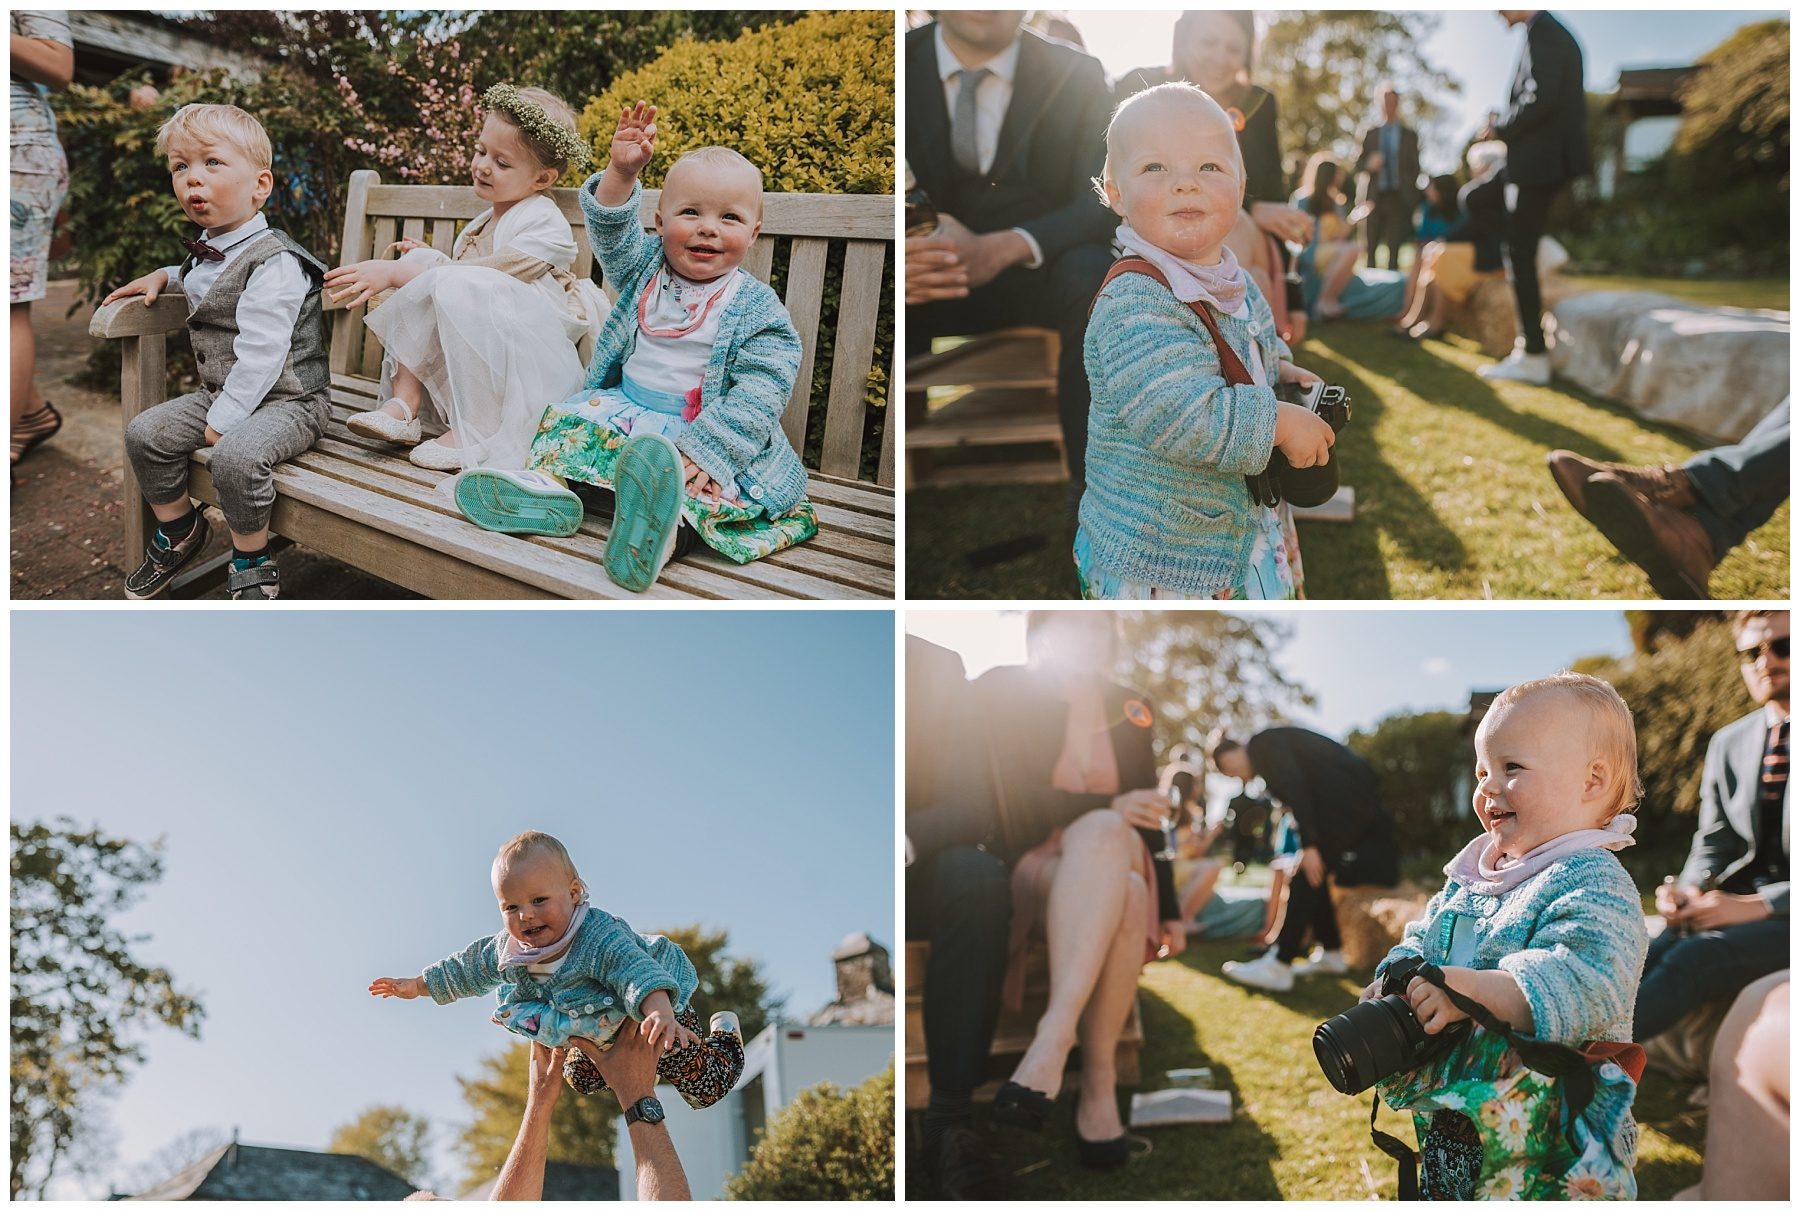 Children at wedding ta mill cornwall wedding photographer